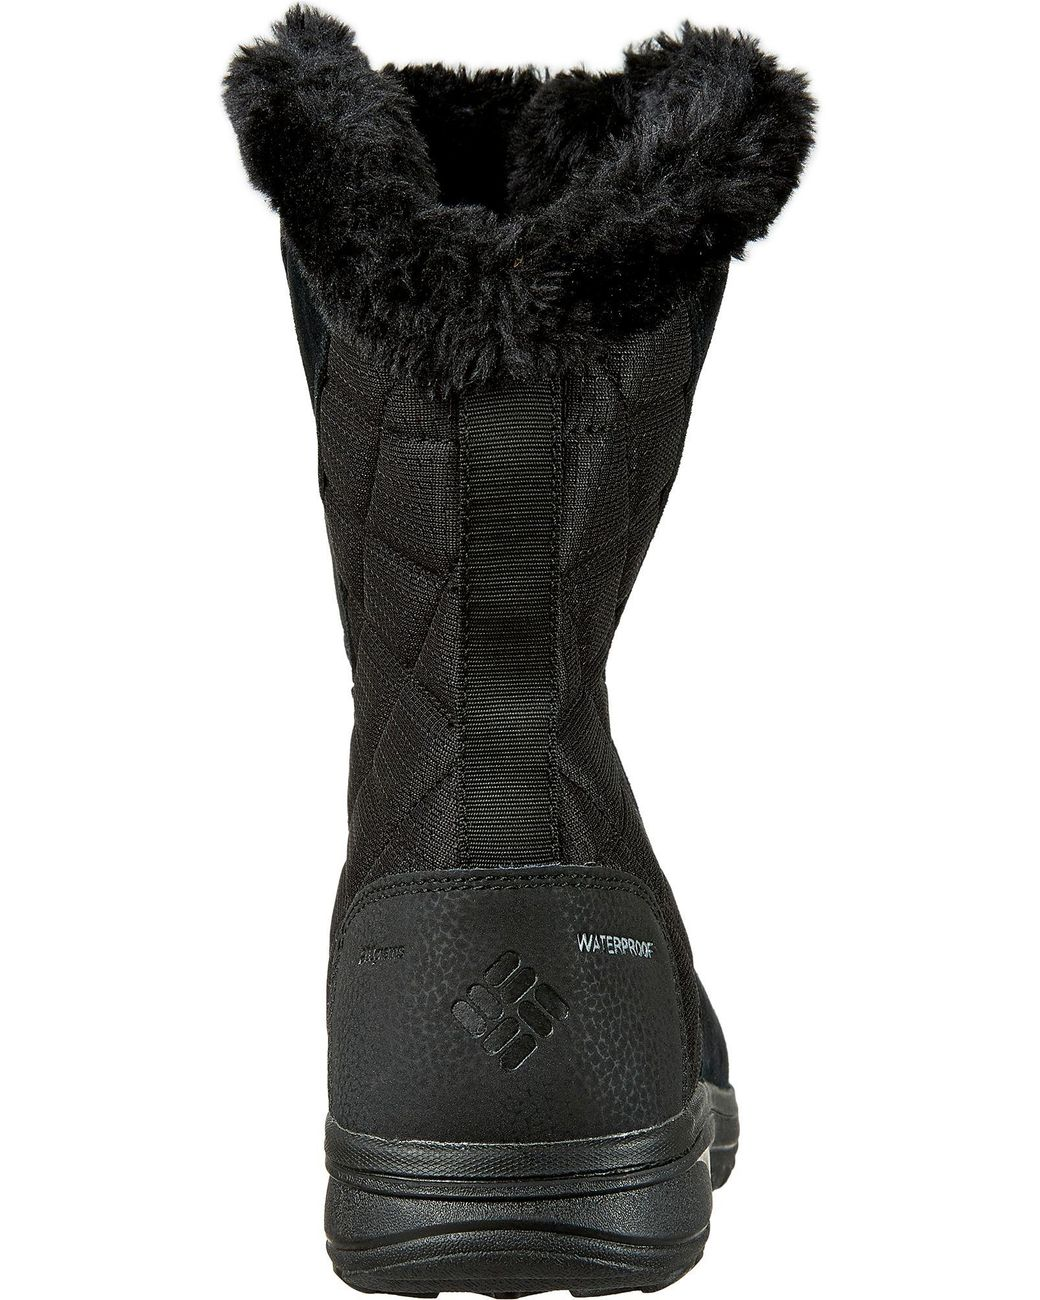 44a14970c3e0c7 Columbia Crystal Canyon 200g Waterproof Winter Boots in Black - Lyst